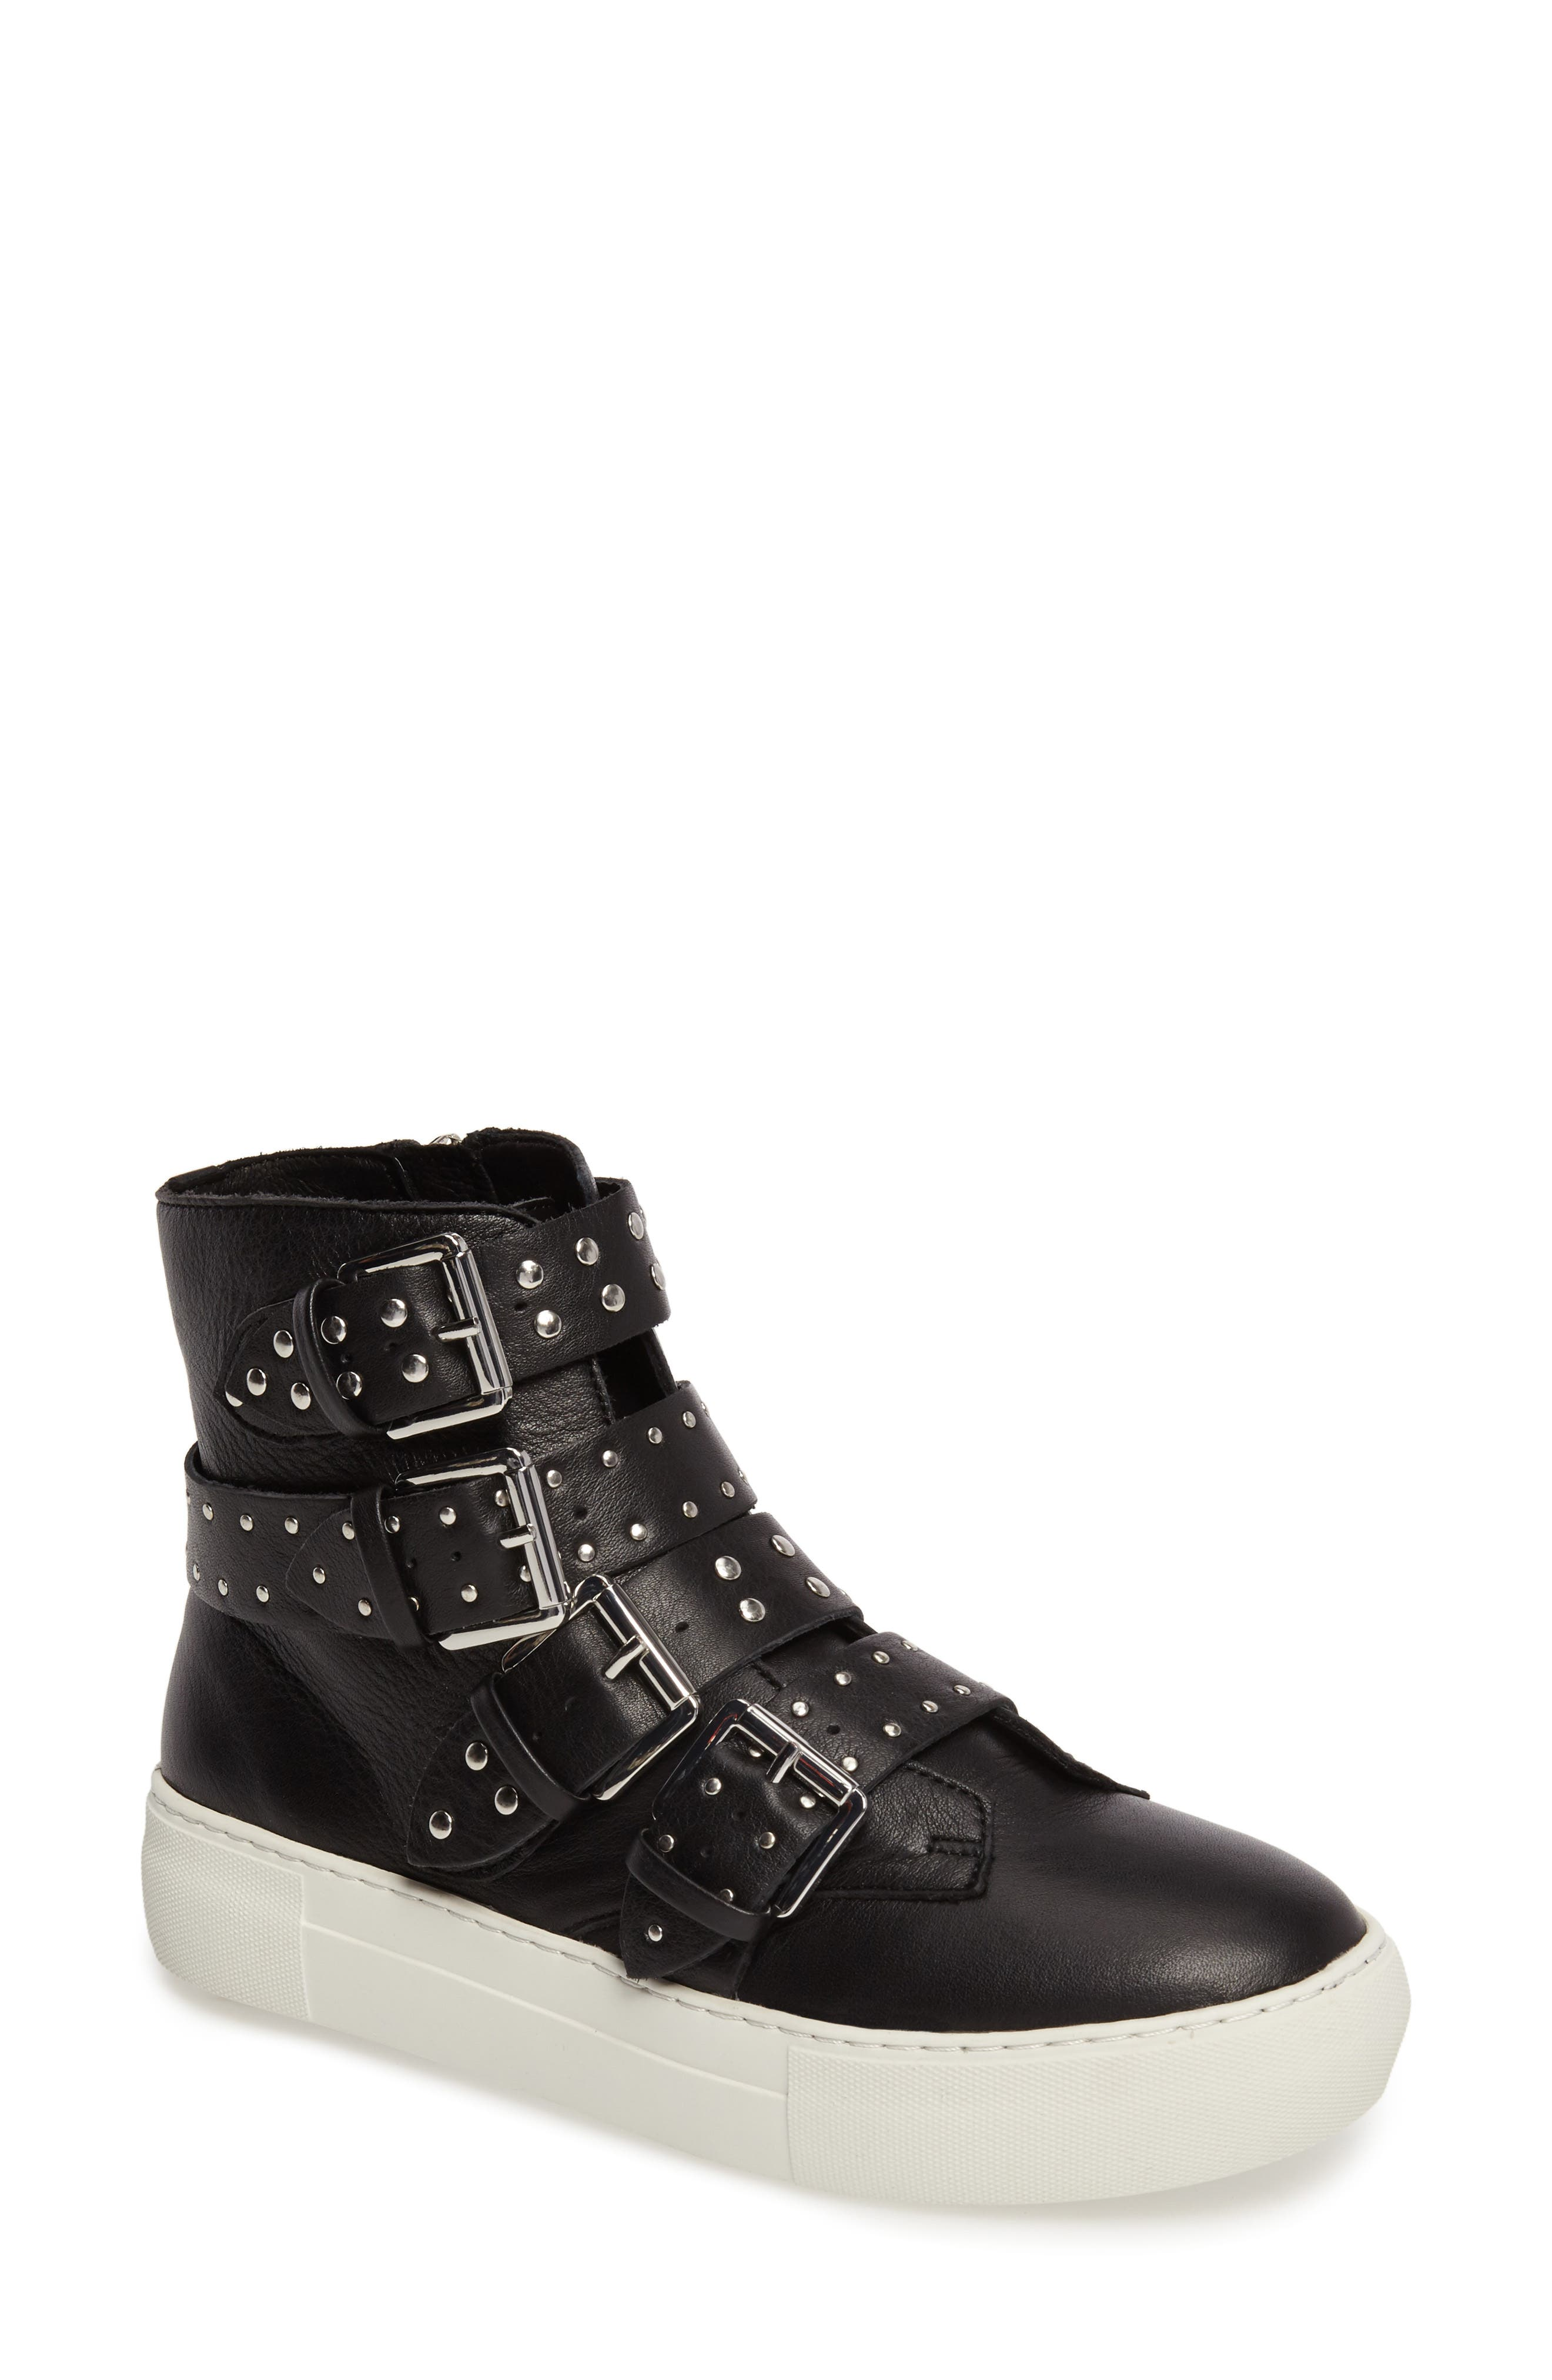 Aghast Buckle Bootie,                         Main,                         color, Black Leather